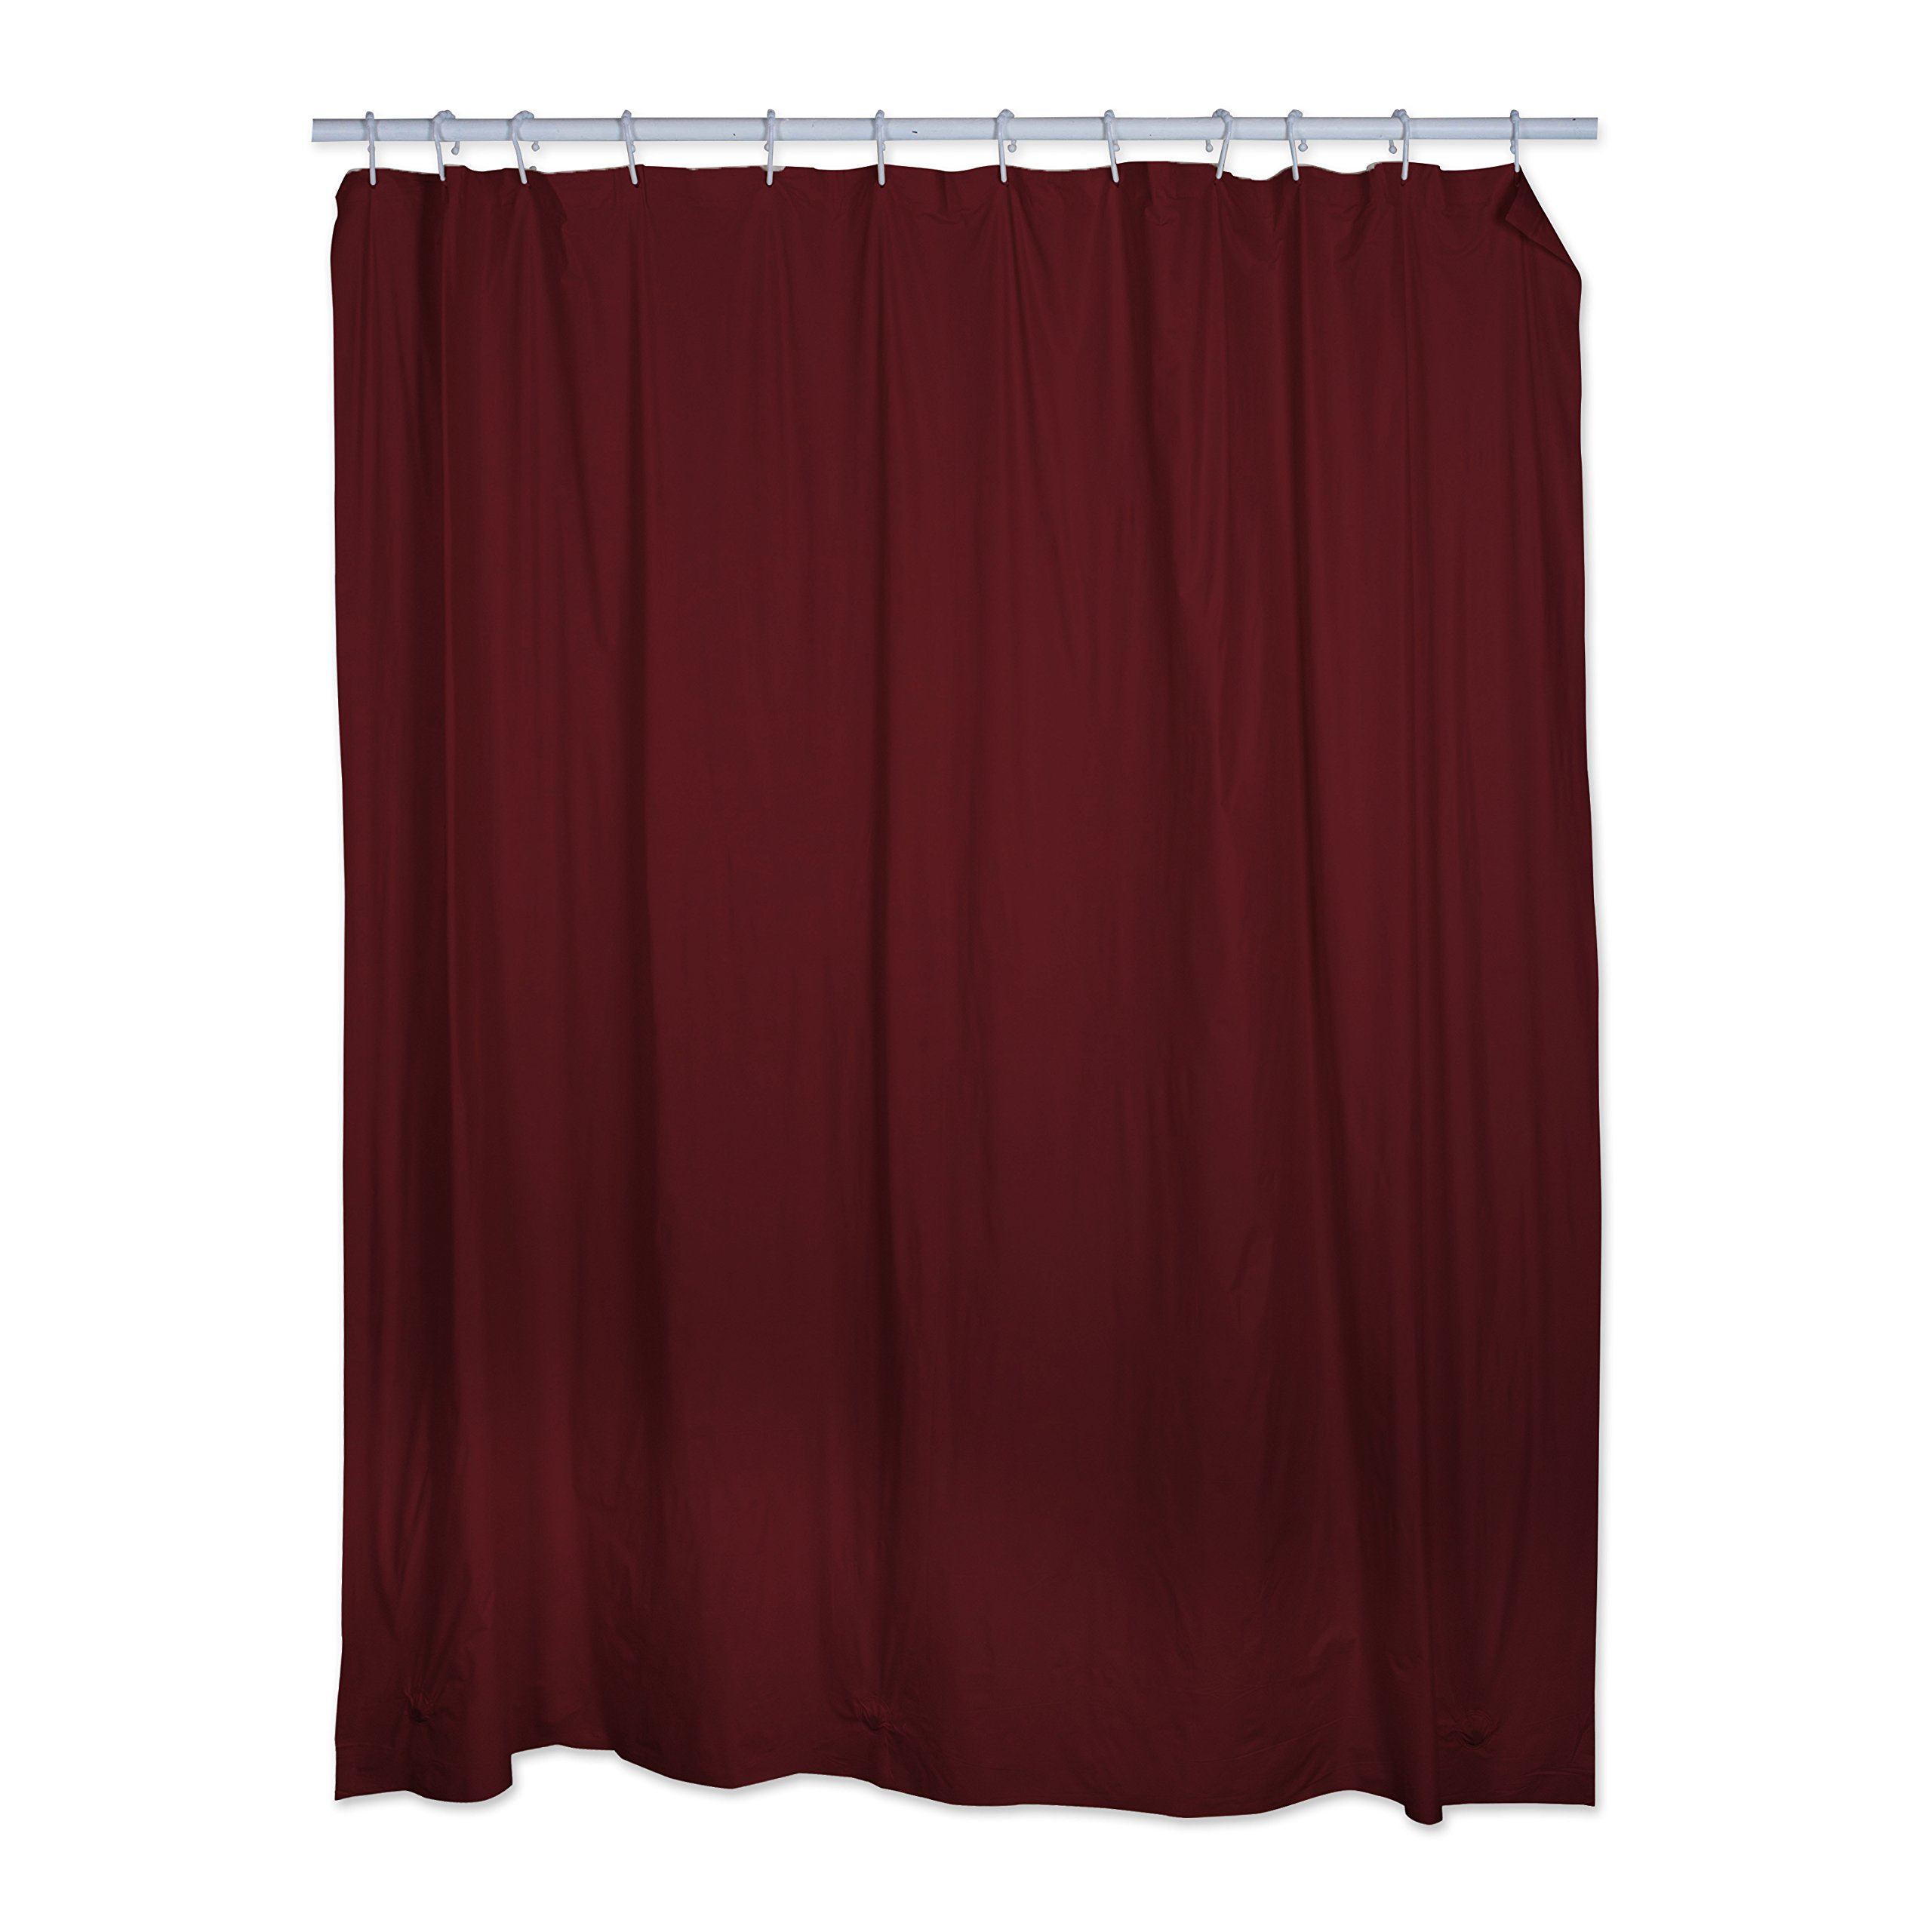 Polyester/PEVA Shower Curtain 70x72'', Antibacterial and Mildew Resistant, Waterproof/Water-Repellent to Resist Germs, Bacteria & Mold for Everyday Use-Burgundy